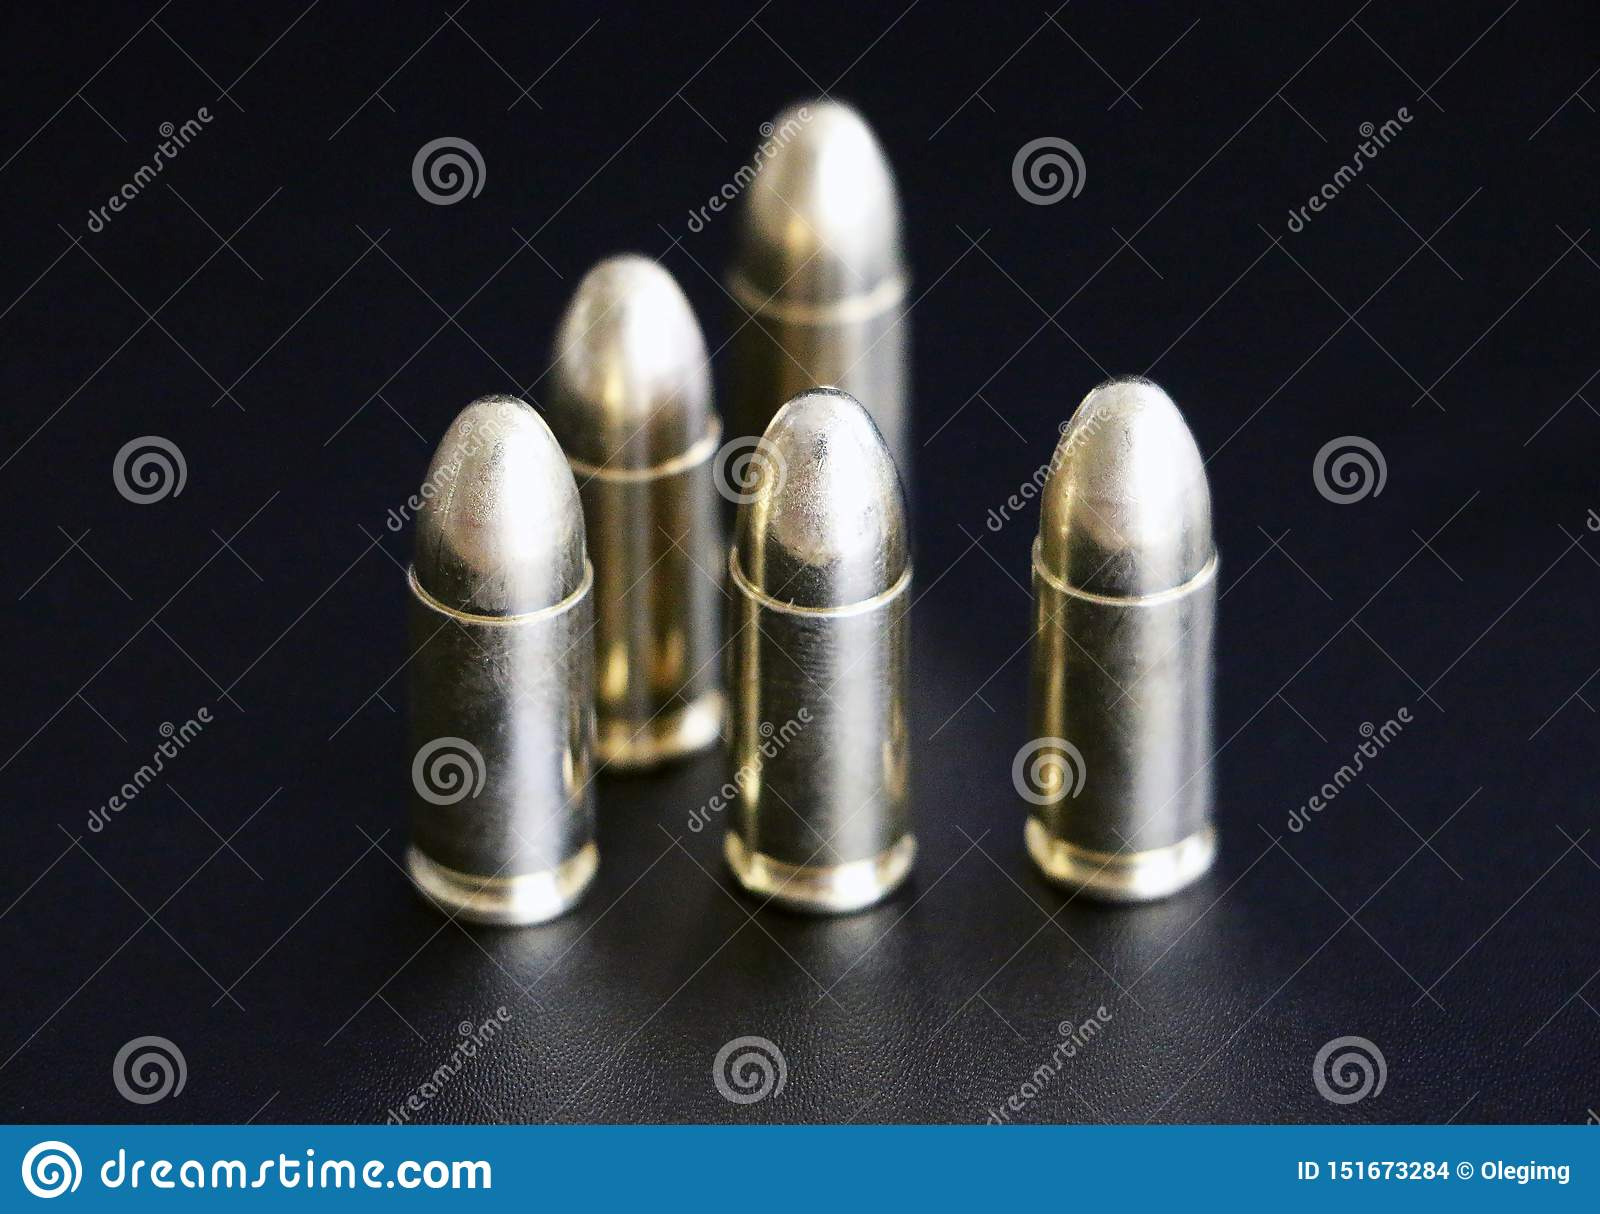 Close up of 9 mm golden pistol bullets ammo on background